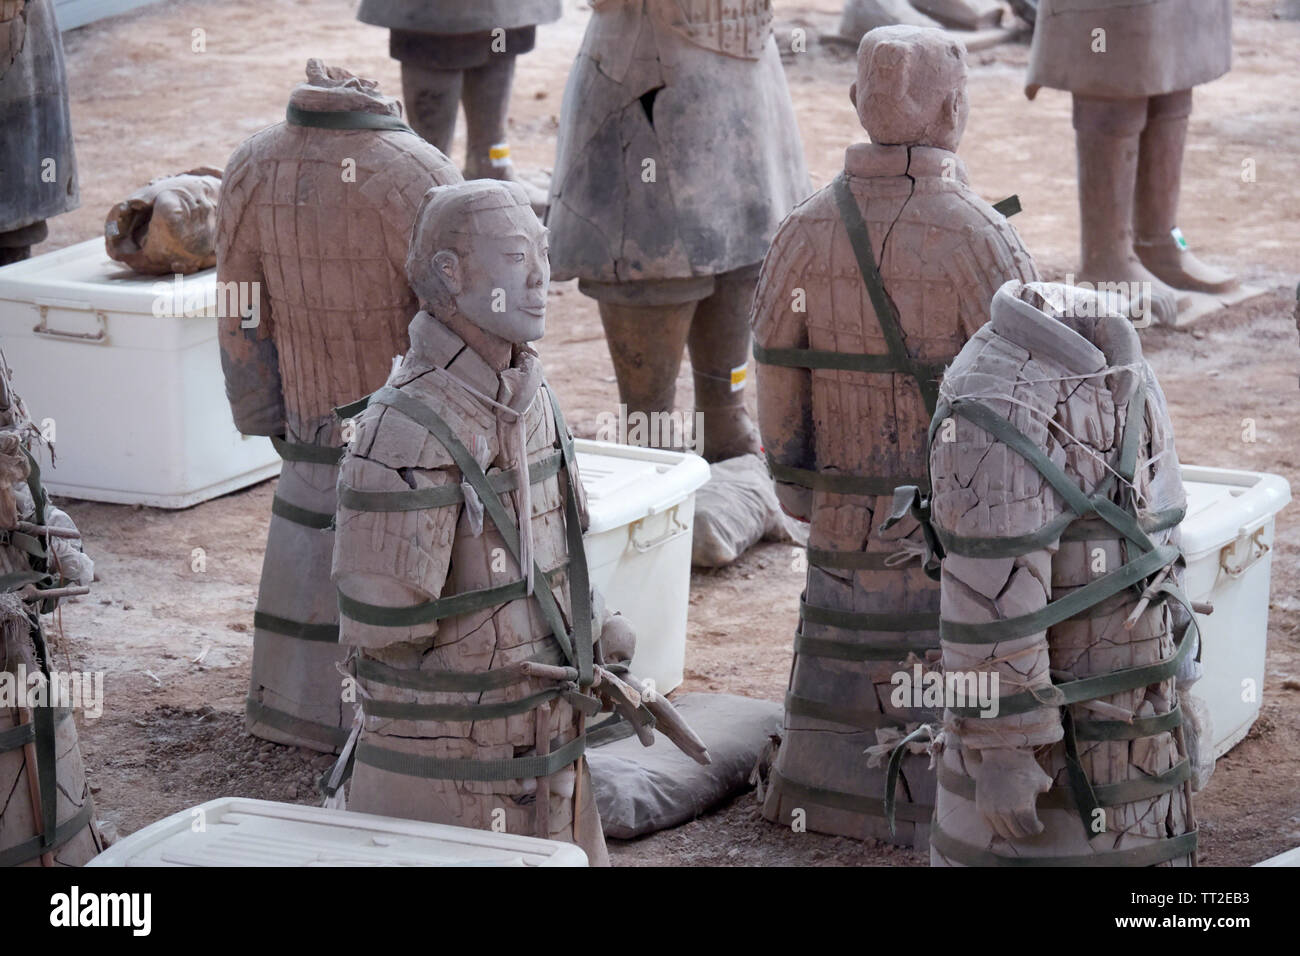 Close Up of  Clay Warriors Being Reconstructedb  Terra-Cotta Army of Emperor Qin, Xian, China Stock Photo